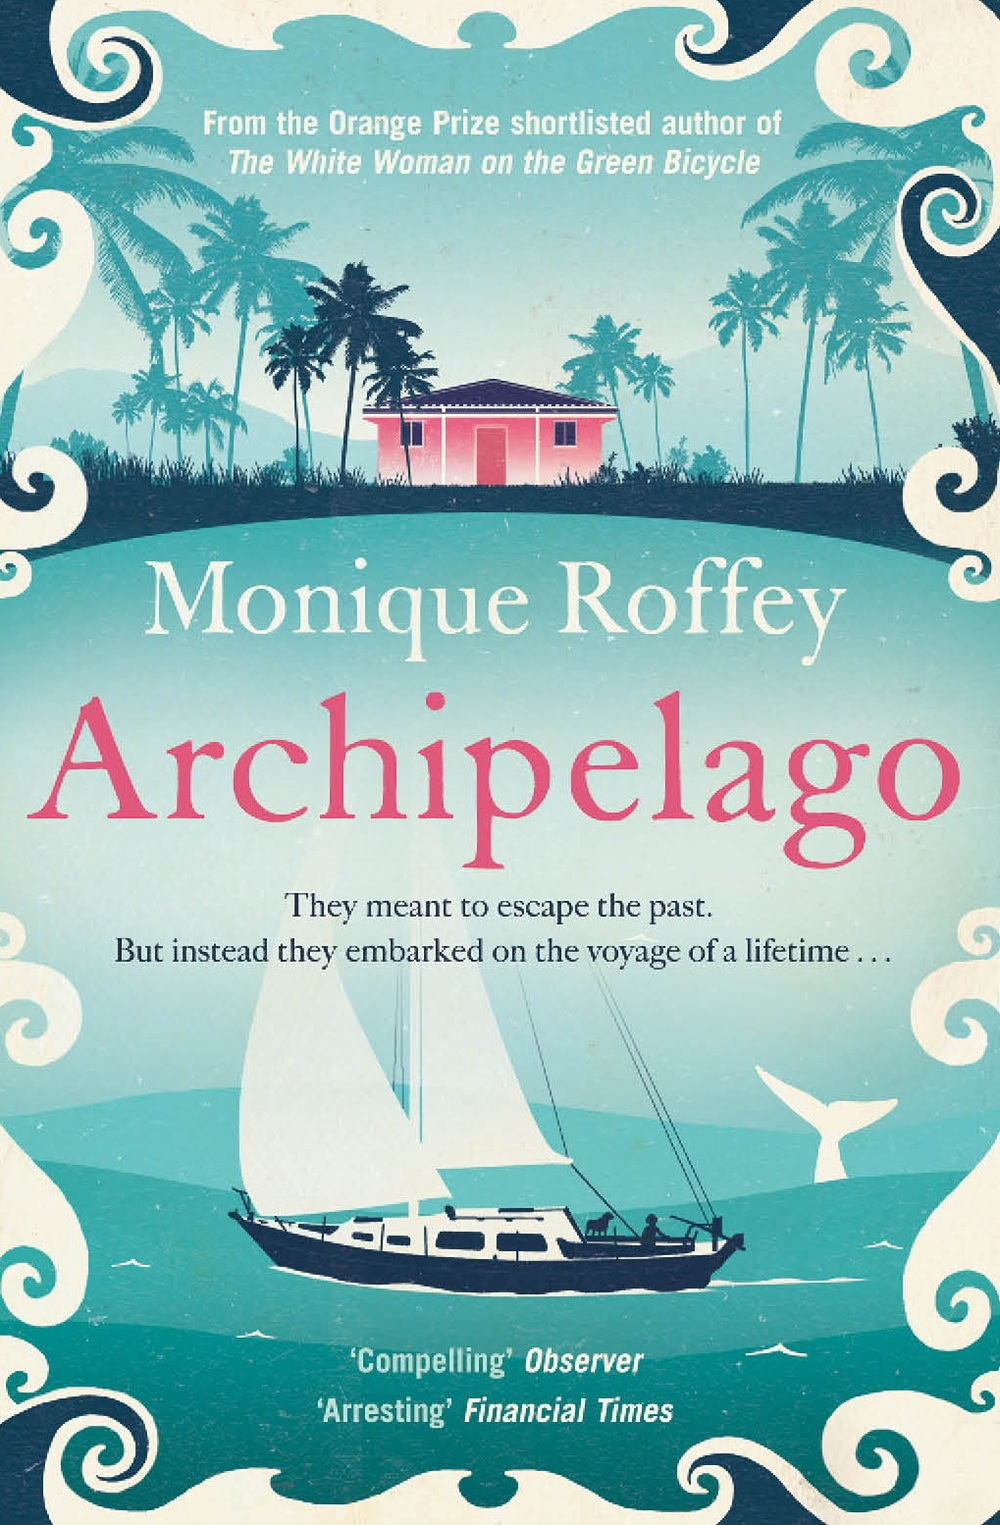 "ARCHIPELAGO Literary fiction Simon & Schuster - July 2012 A flood destroys Gavin Weald's home in Trinidad and rips his family apart. A year later he returns to his house and tries to start over, but his daughter's nightmares about the torrents make life there unbearable. So father and daughter - and their dog - embark upon a voyage to make peace with the waters. ""Appealingly warmhearted."" -- Kirkus"